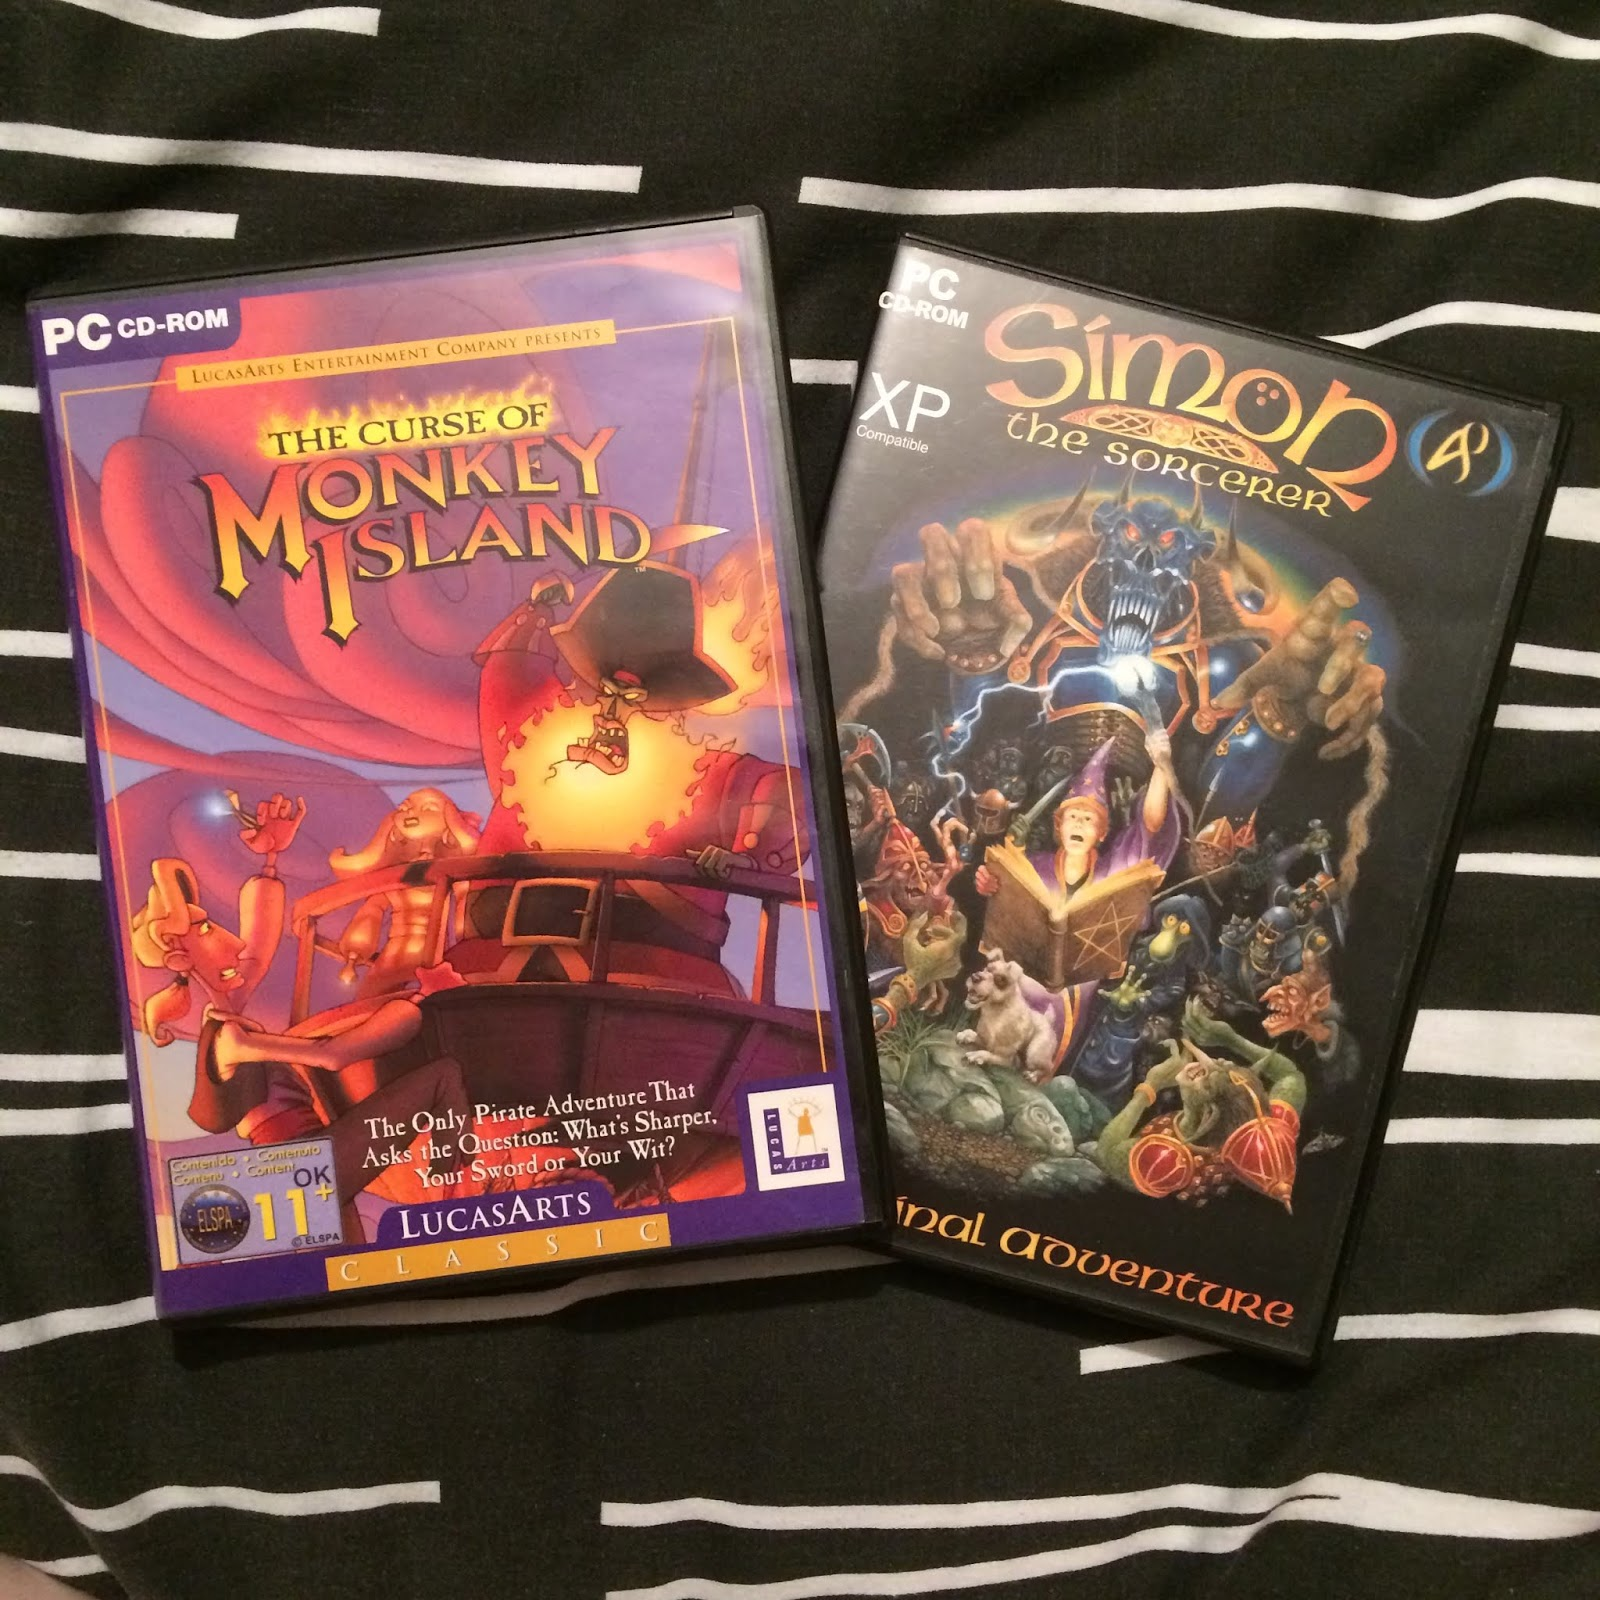 A photo of the cases for The Curse of Monkey Island and Simon the Sorcerer